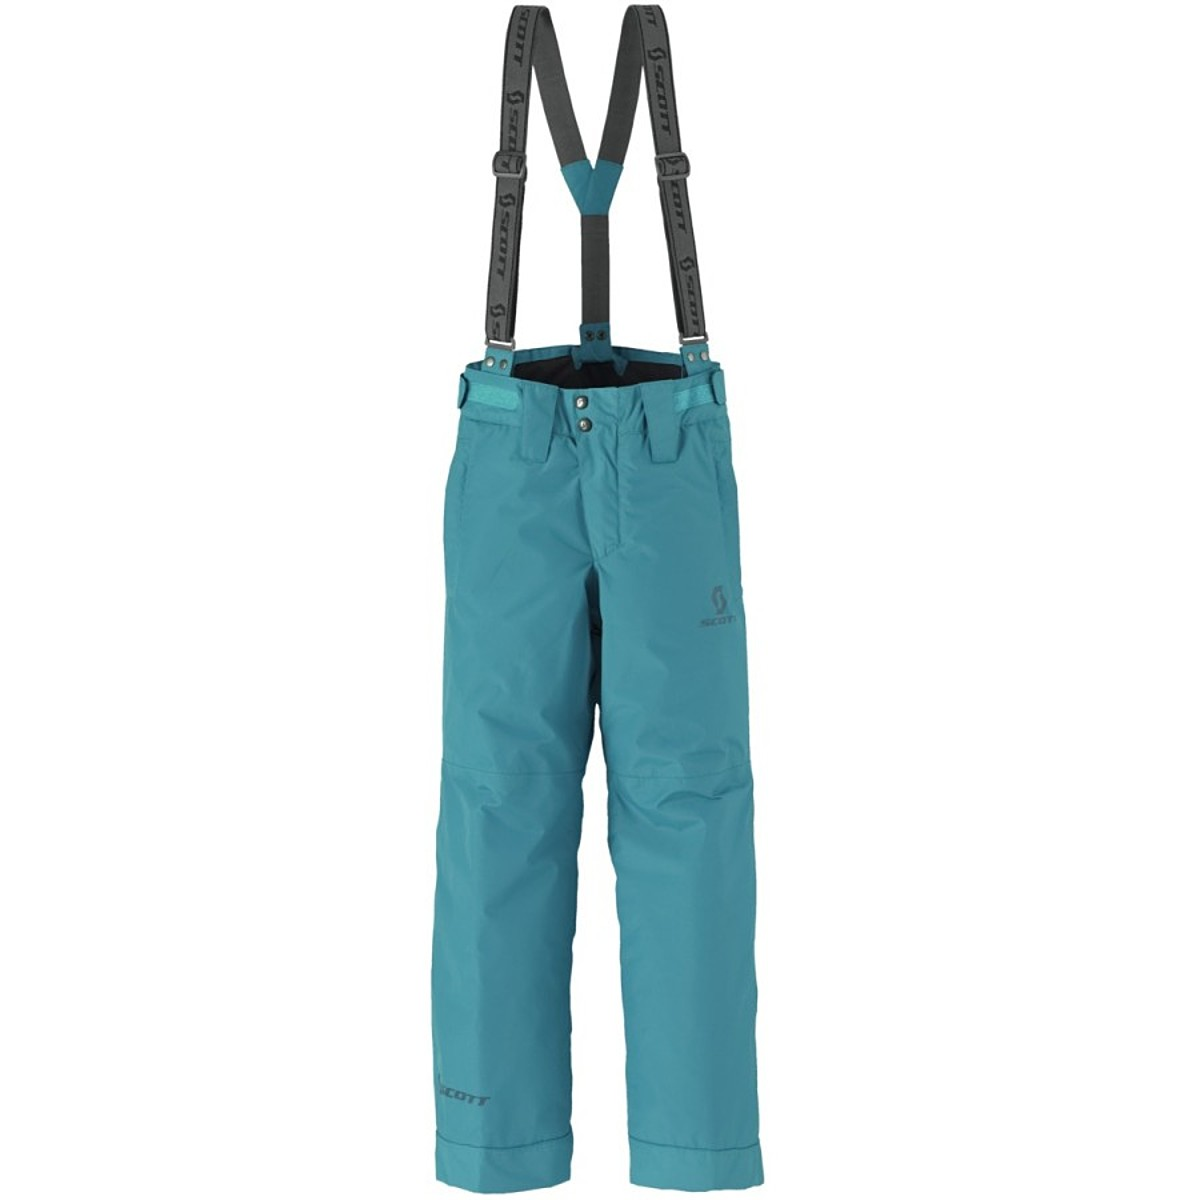 Scott Premium GT Junior Pant